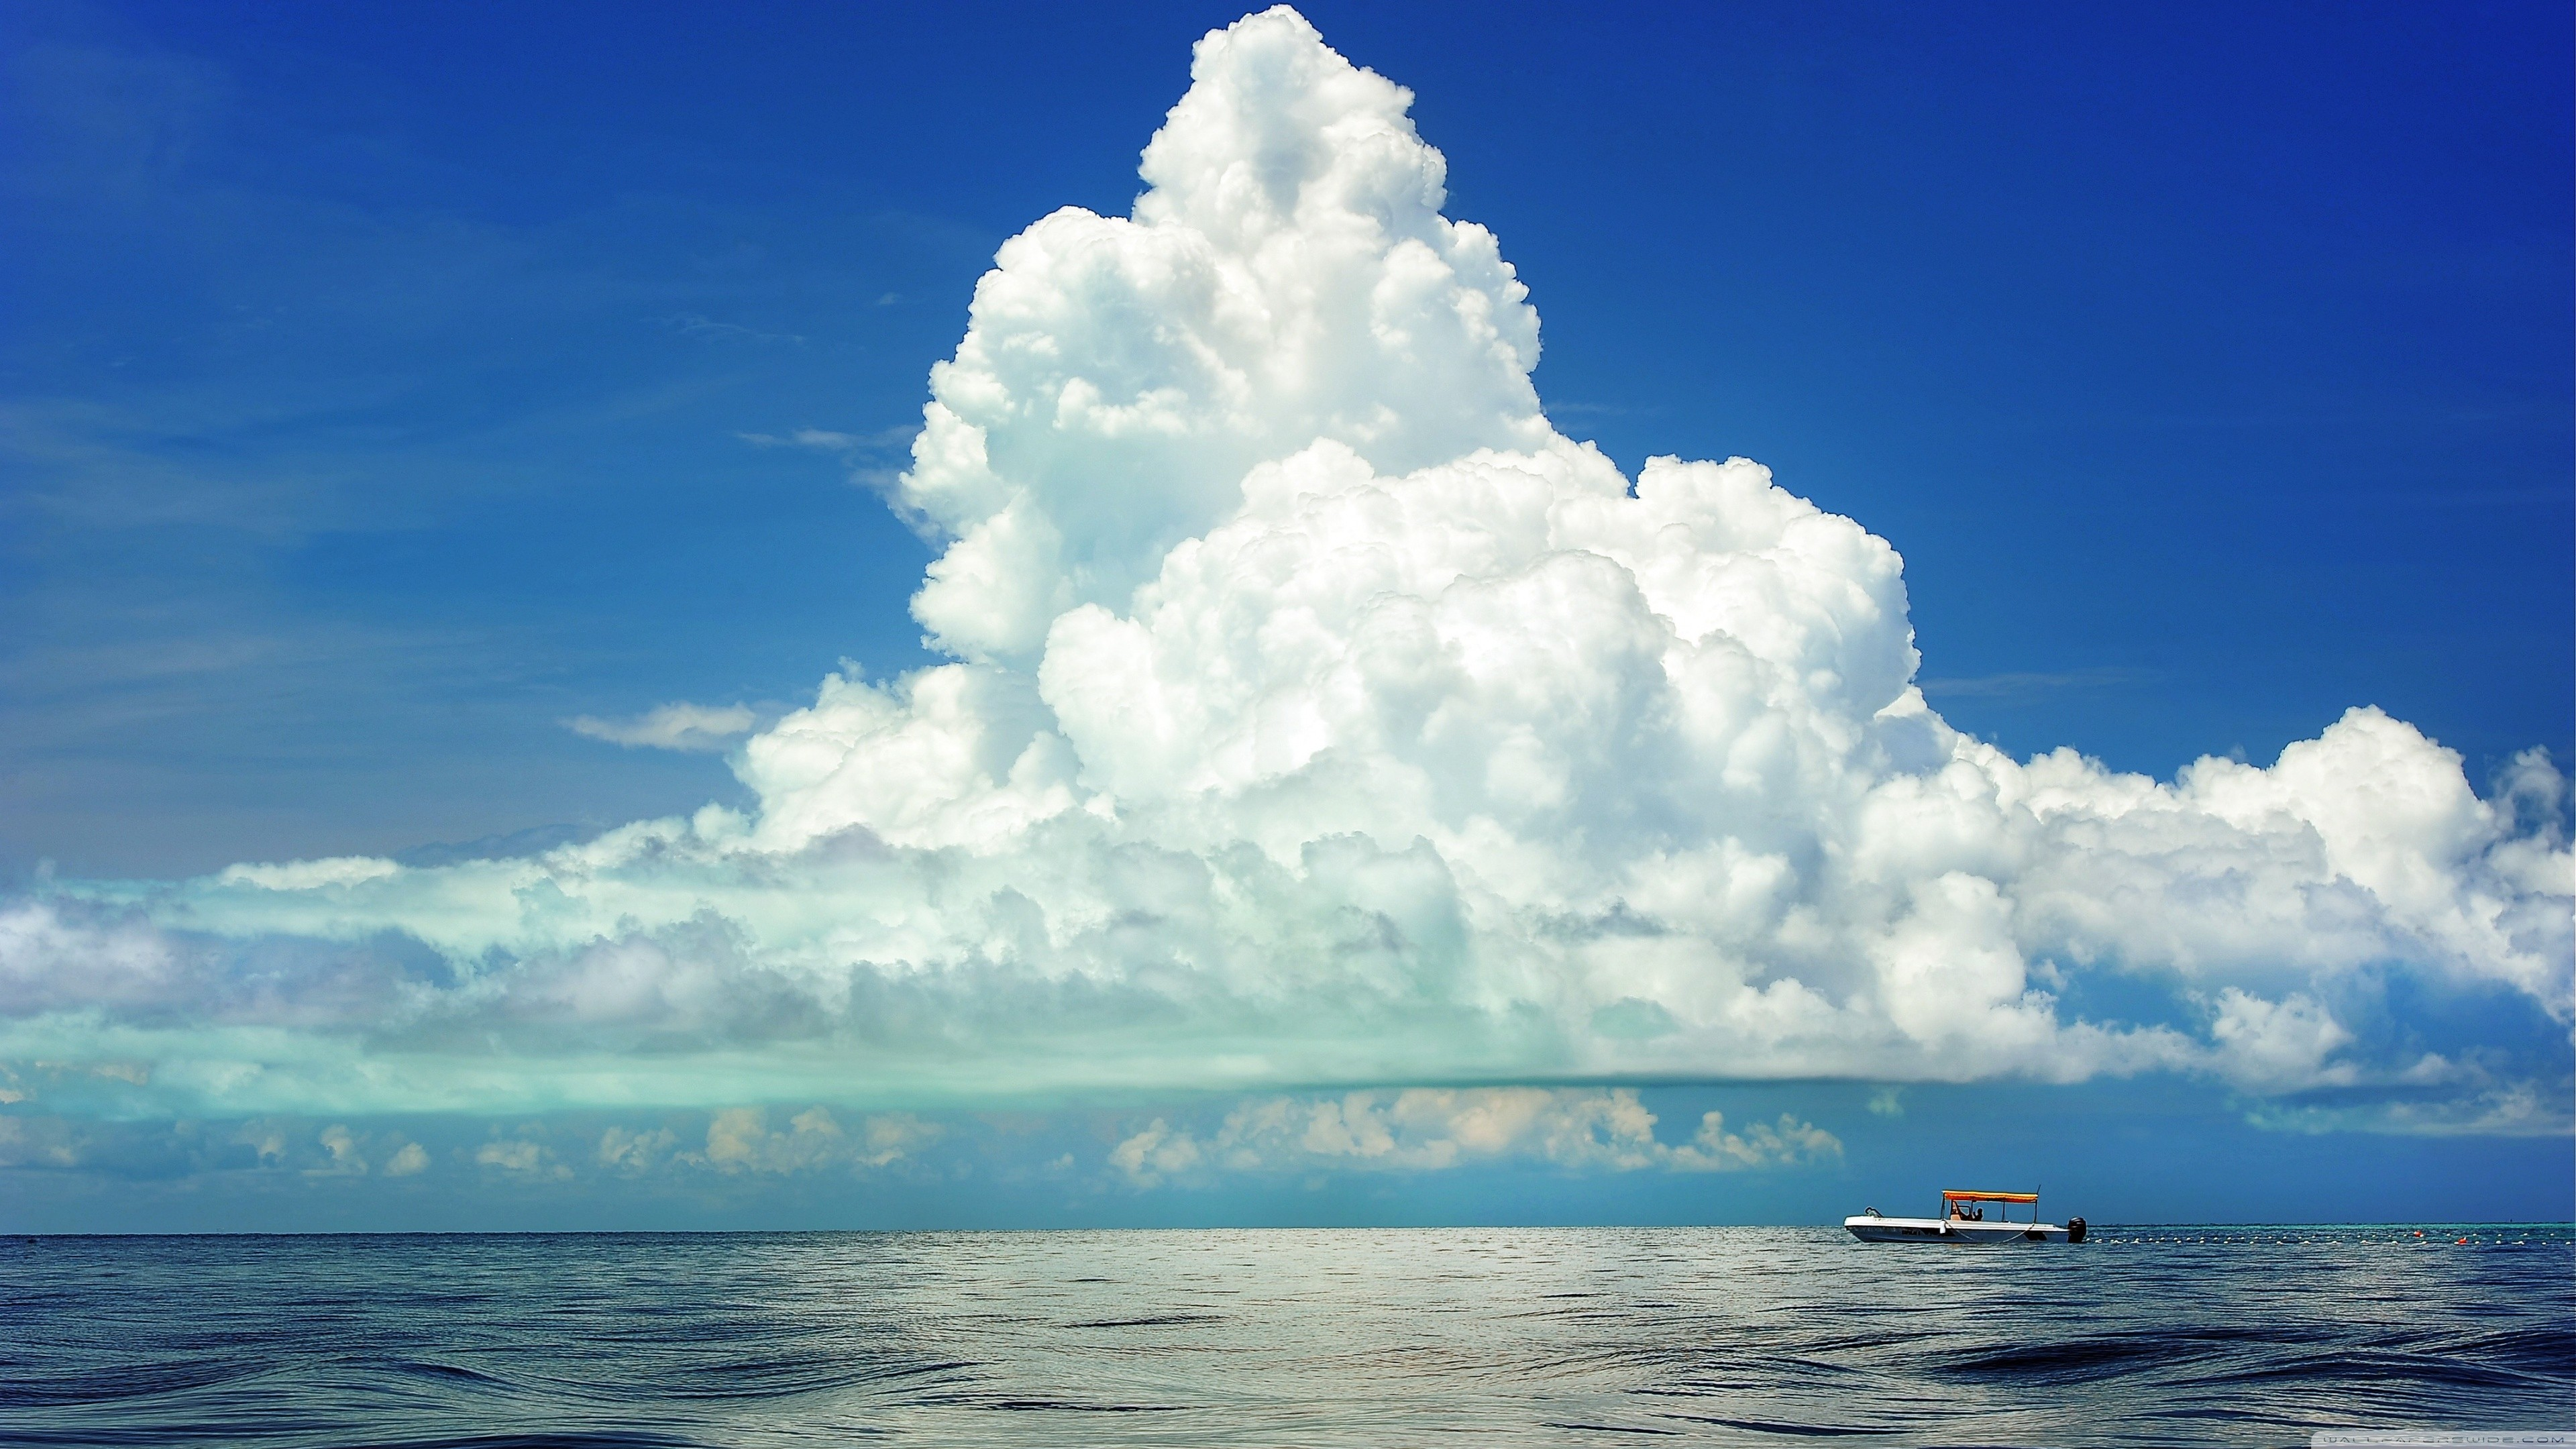 Wallpaper Cumulus Clouds 4k Hd Wallpaper Sky Sea